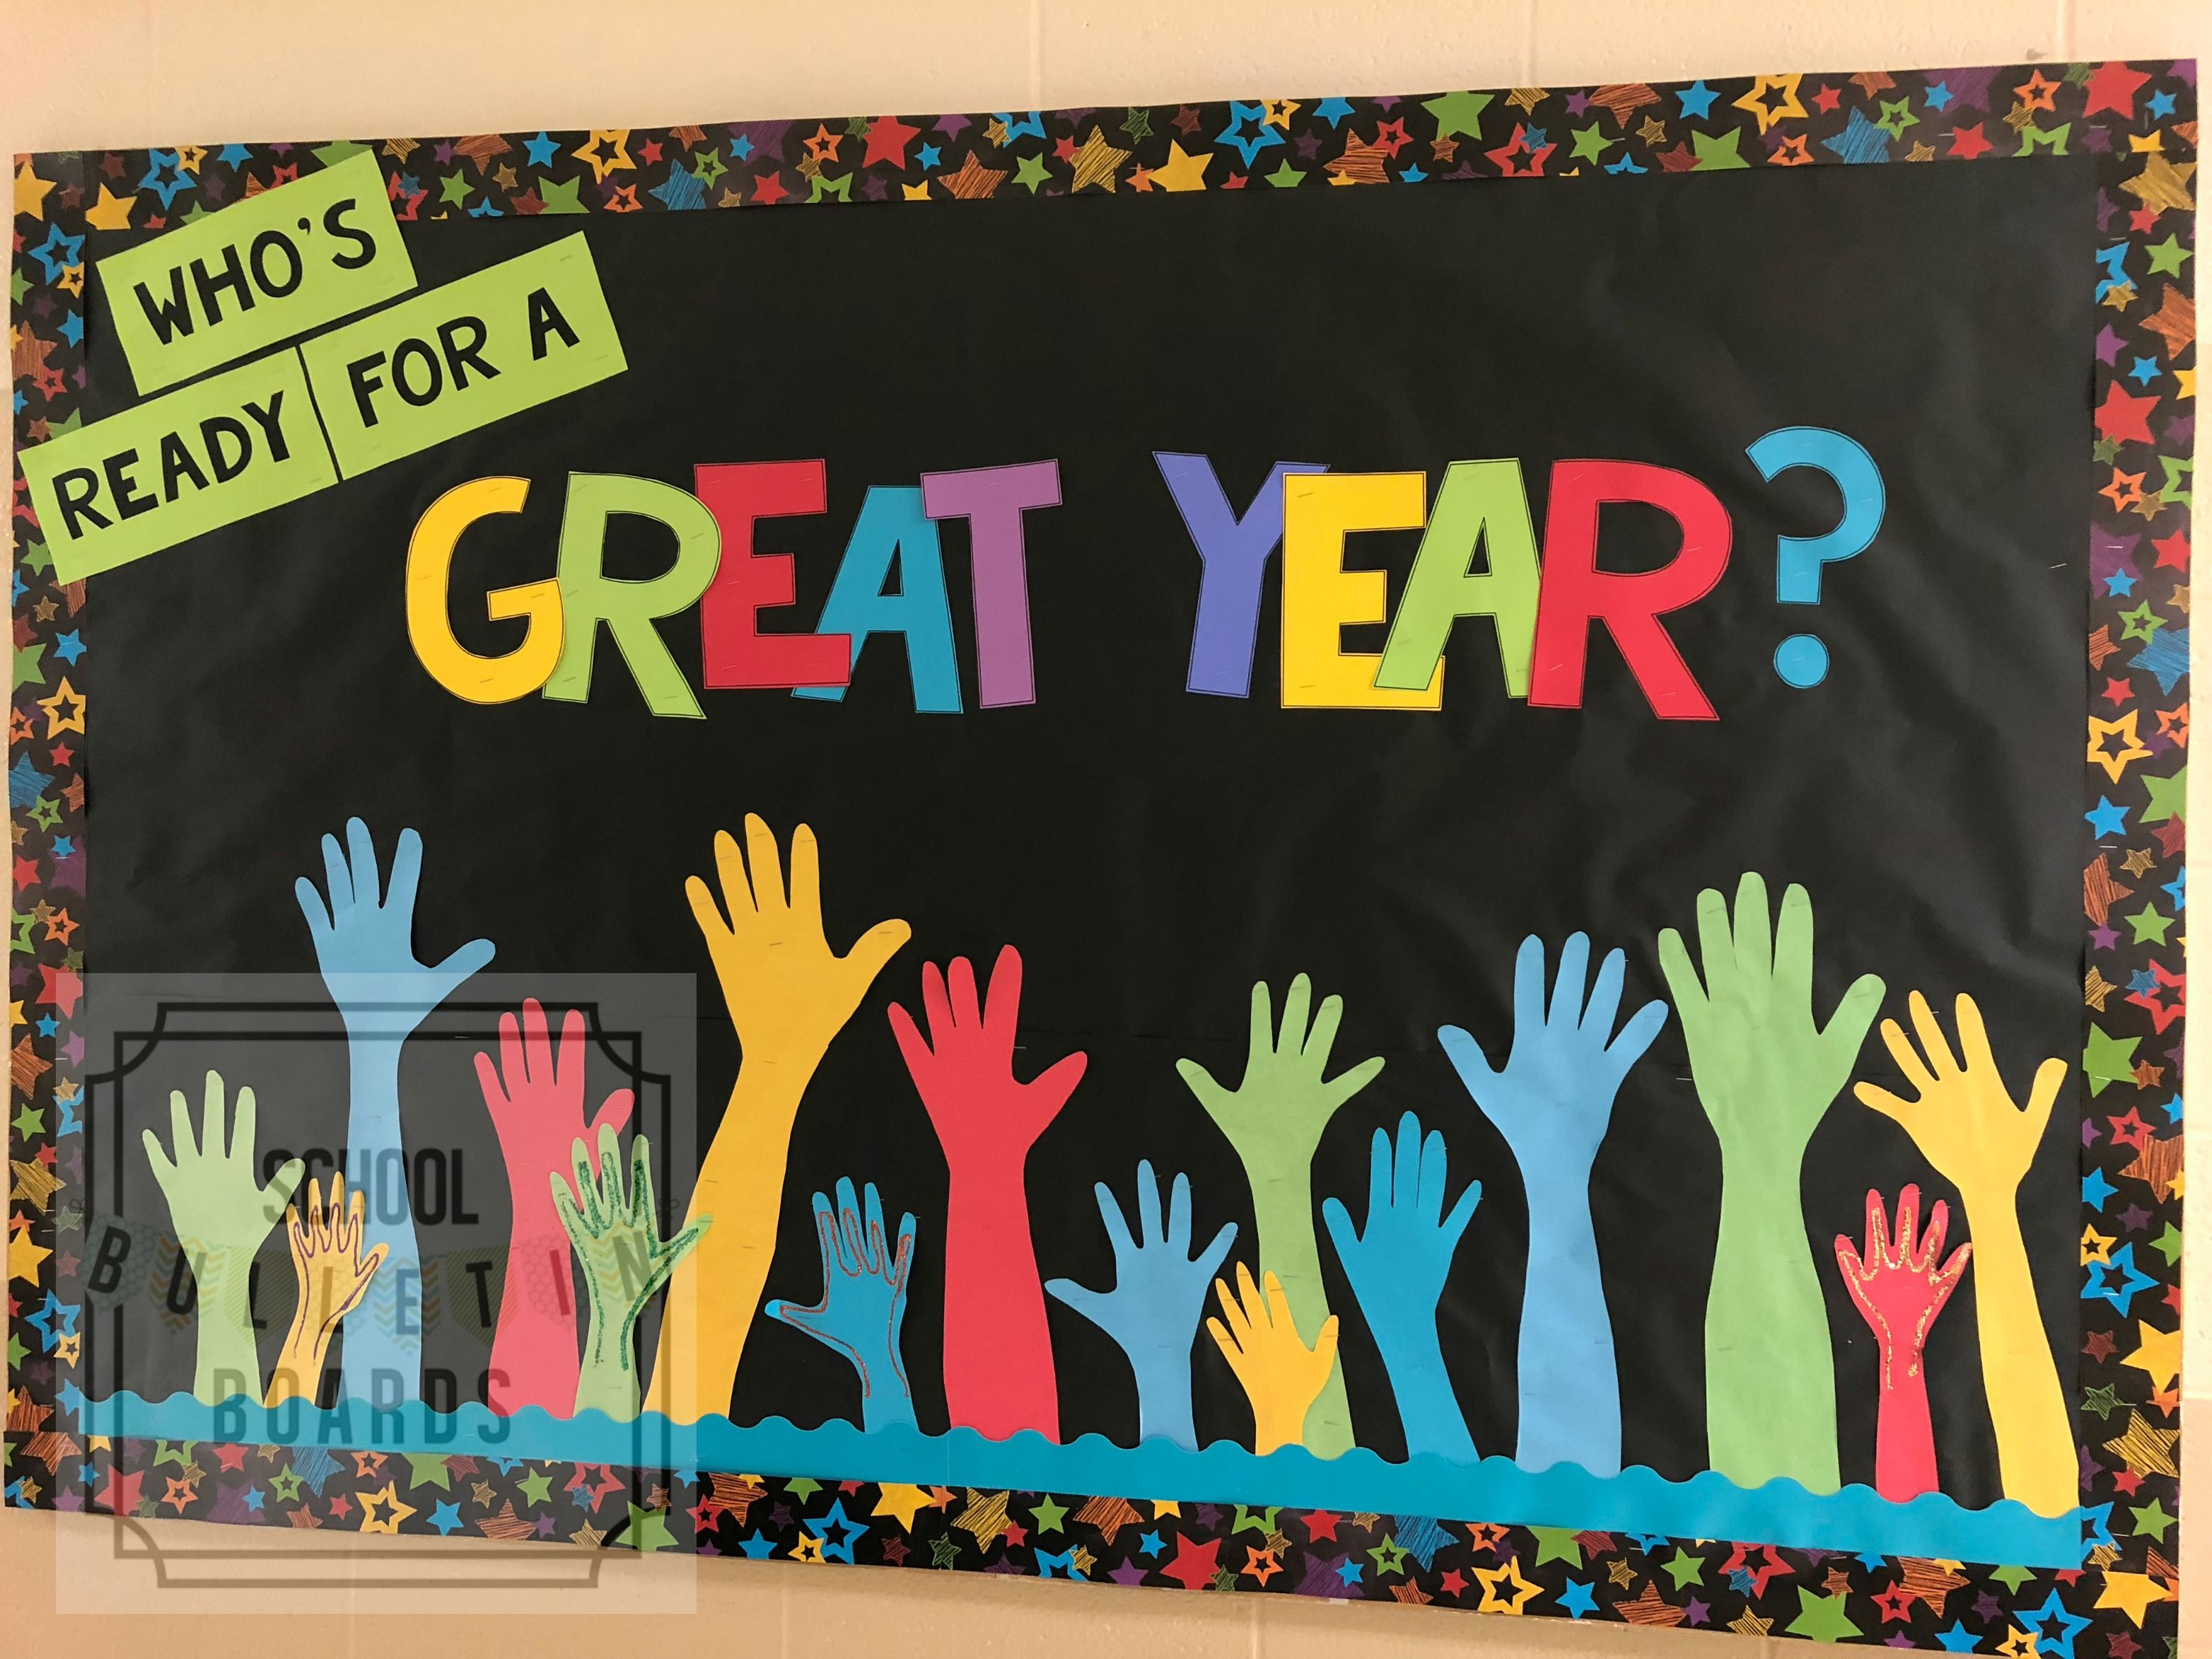 Back to School bulletin boards don't have to be time consuming or super cutesy. Even better when they get students involved in the process too! #backtoschool #bulletinboards #falldoordecorationsclassroom